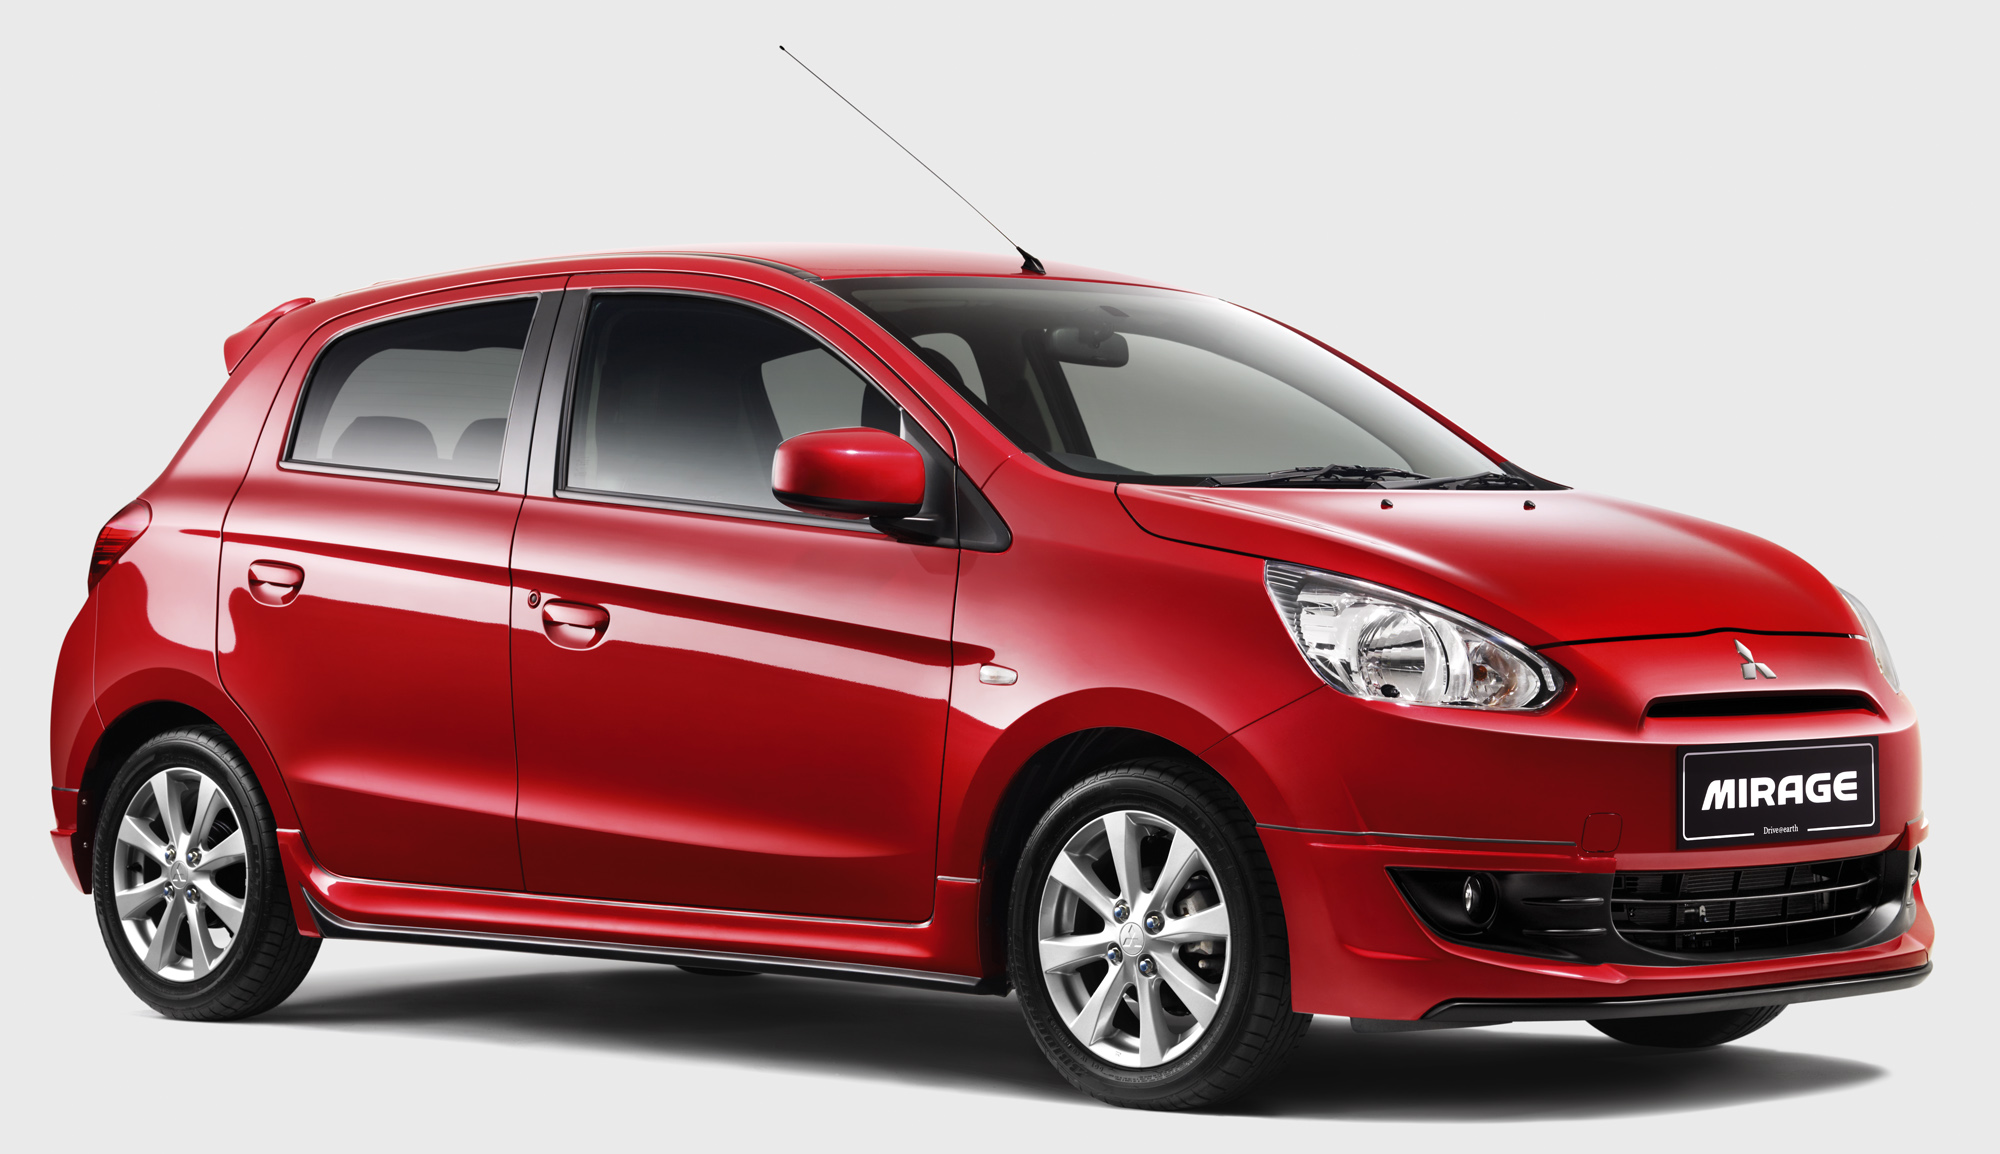 2013 Mitsubishi Mirage Sports (RM69,980 OTR) | Malaysiasaya - Trendy & Today